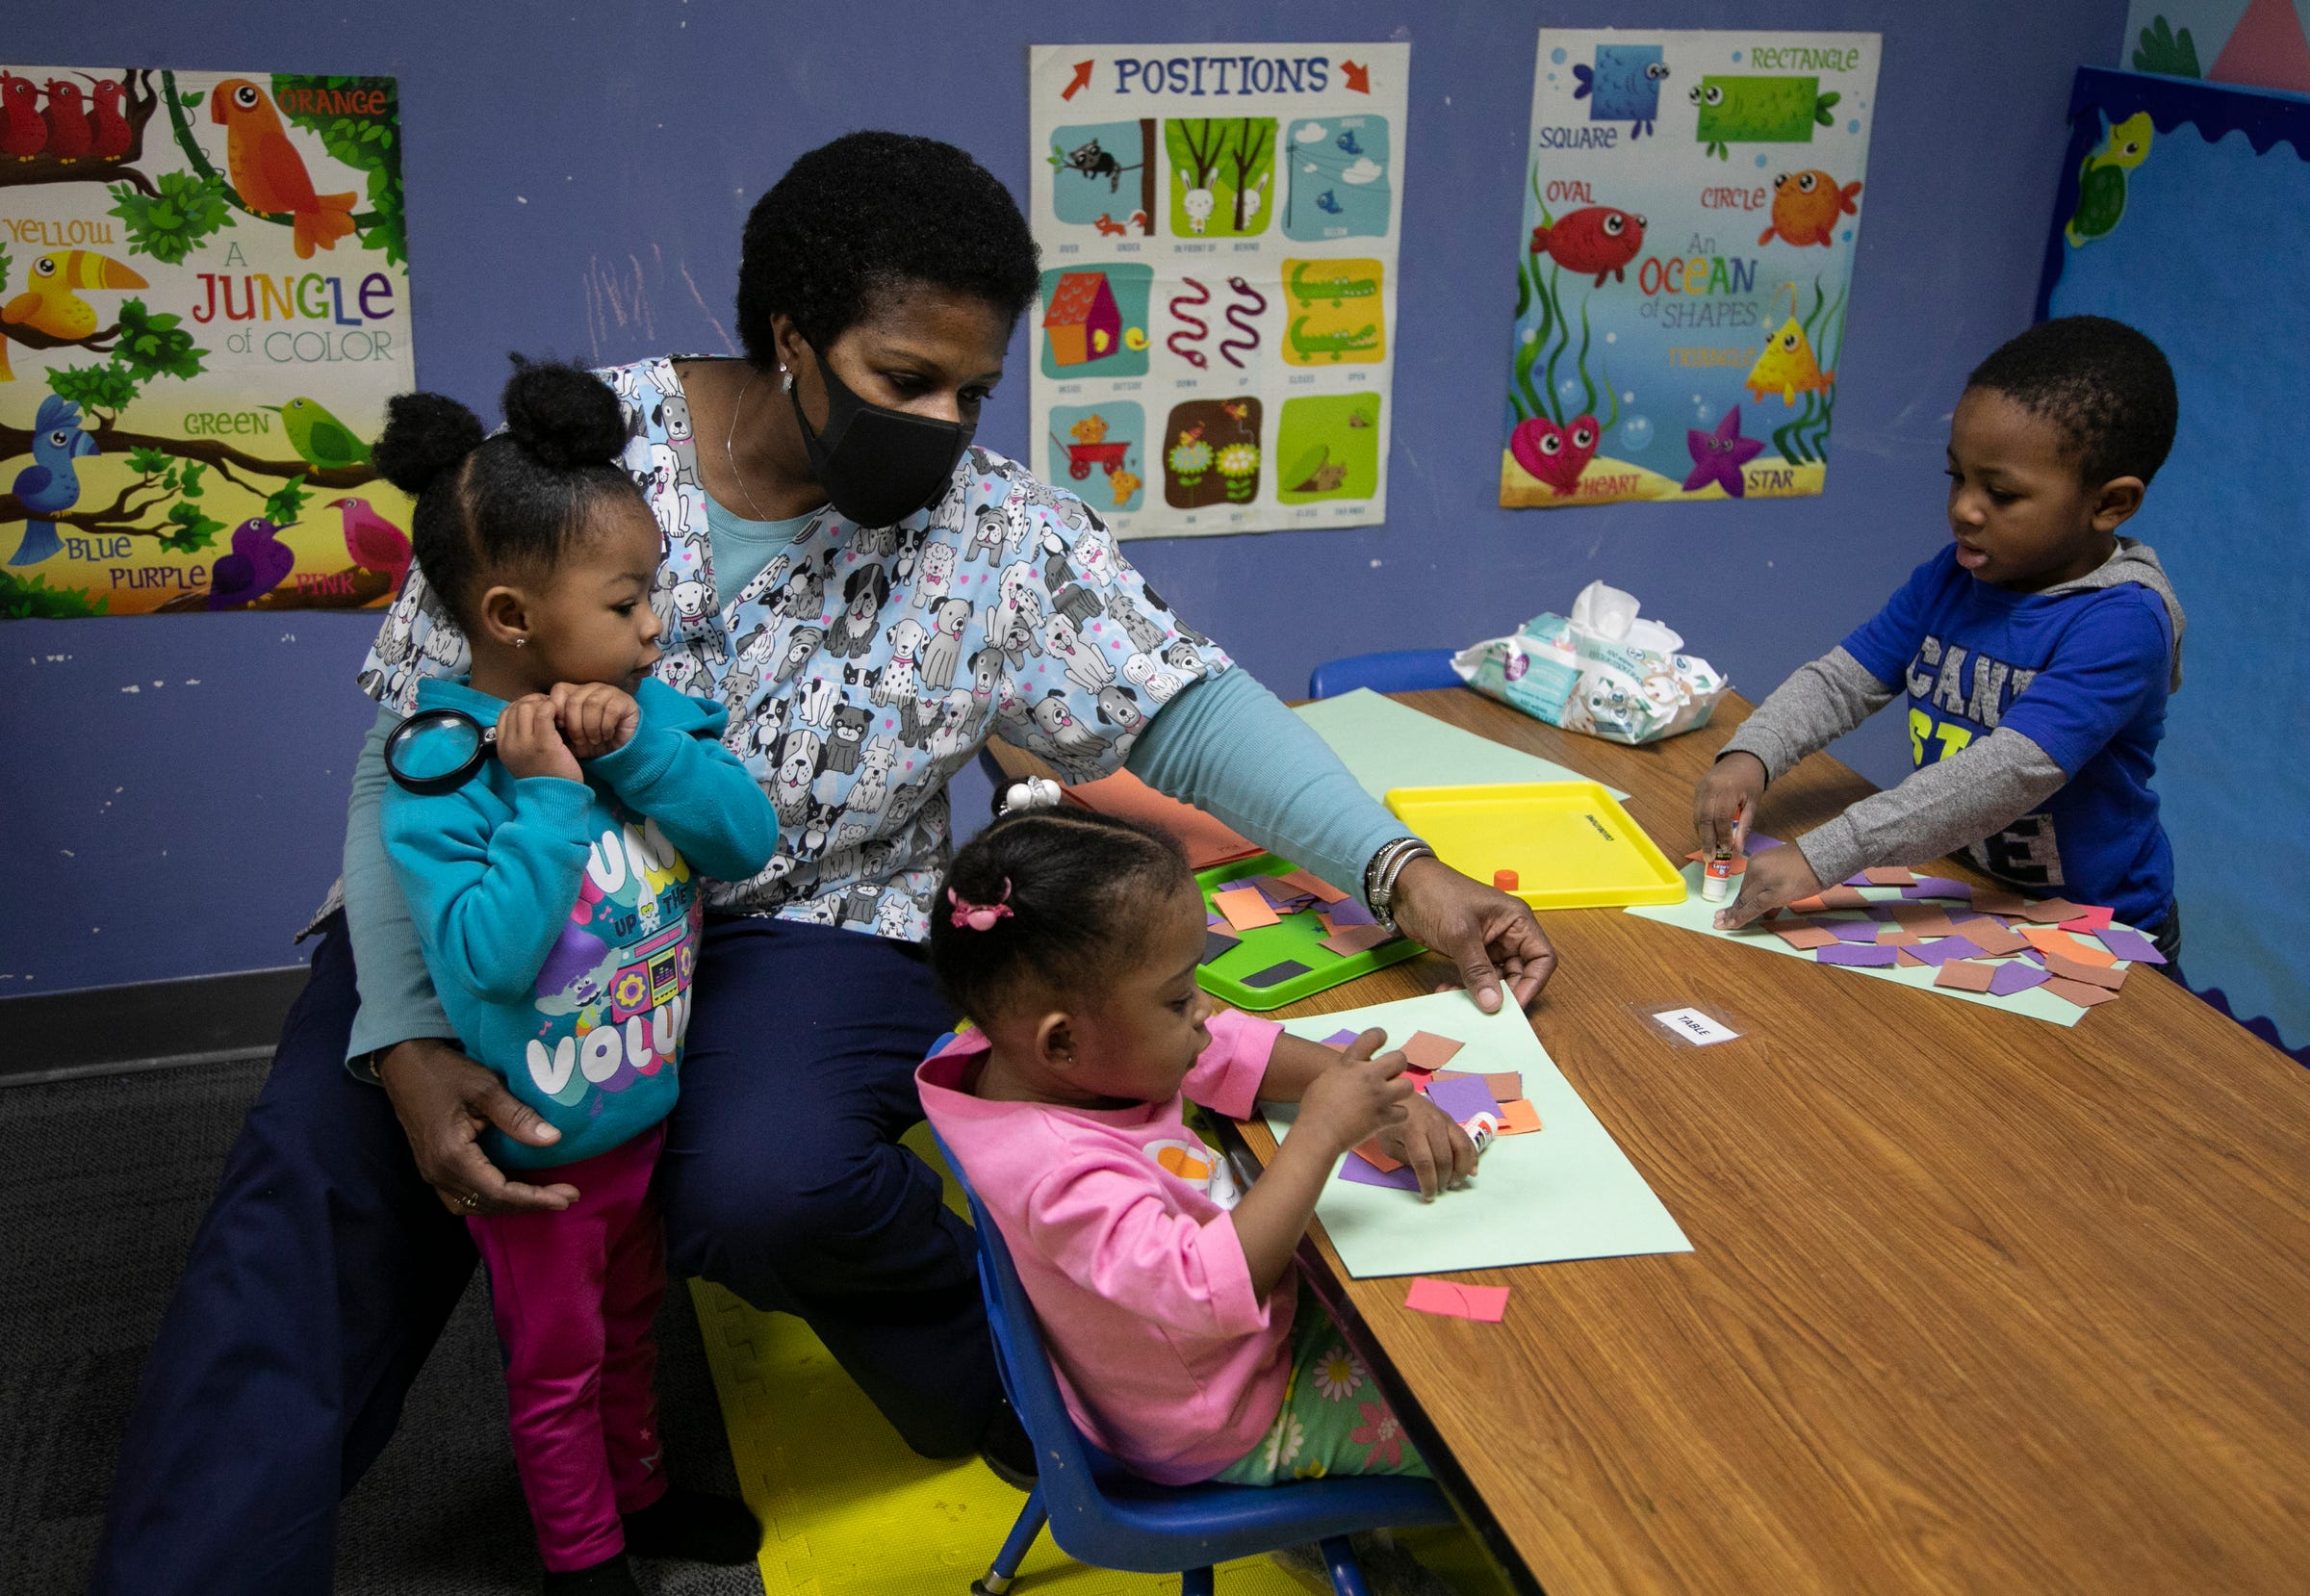 Early start teacher Theresa Copeland wraps up an art project with her students Brailey Hutchinson, 2, left, Aliah Hicks, 2, and Apollo Burton, 2, on Mar. 11, 2021. Franklin Wright Settlements turns 140 this year. The organization is all about helping Detroiters with basic life, social and family needs.